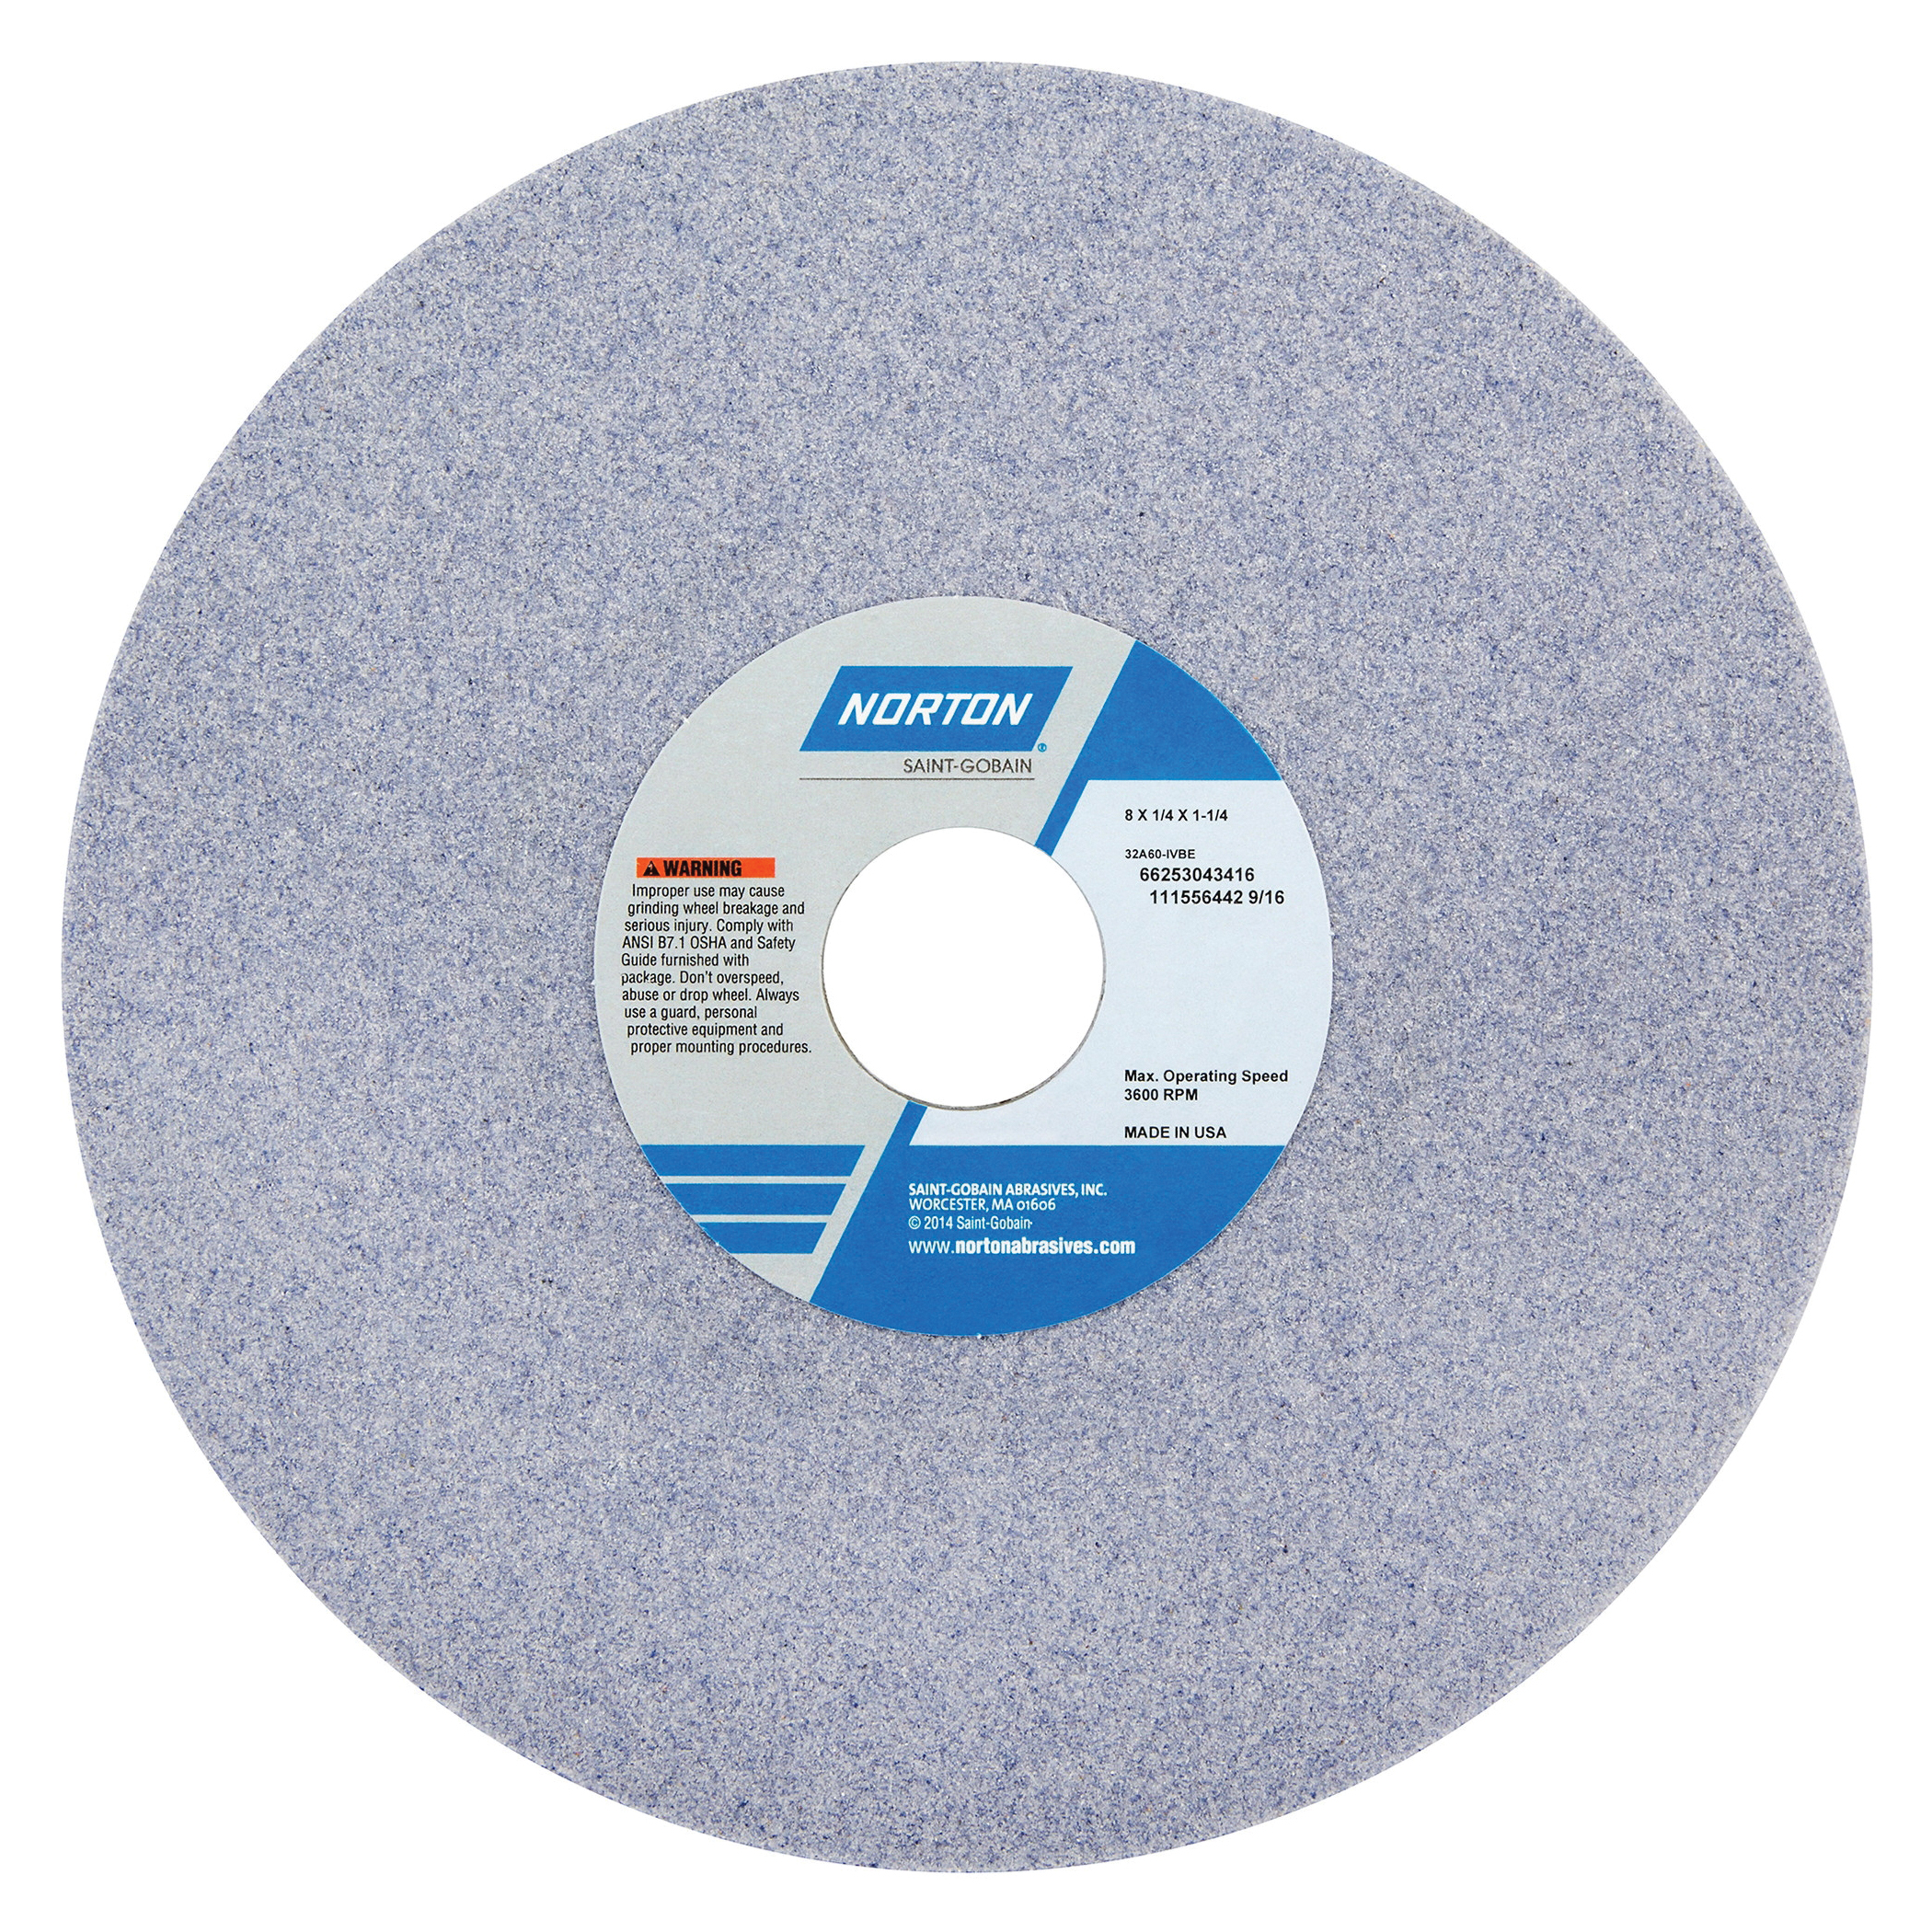 Norton® 66253043425 32A Straight Toolroom Wheel, 8 in Dia x 1/4 in THK, 1-1/4 in Center Hole, 80 Grit, Aluminum Oxide Abrasive